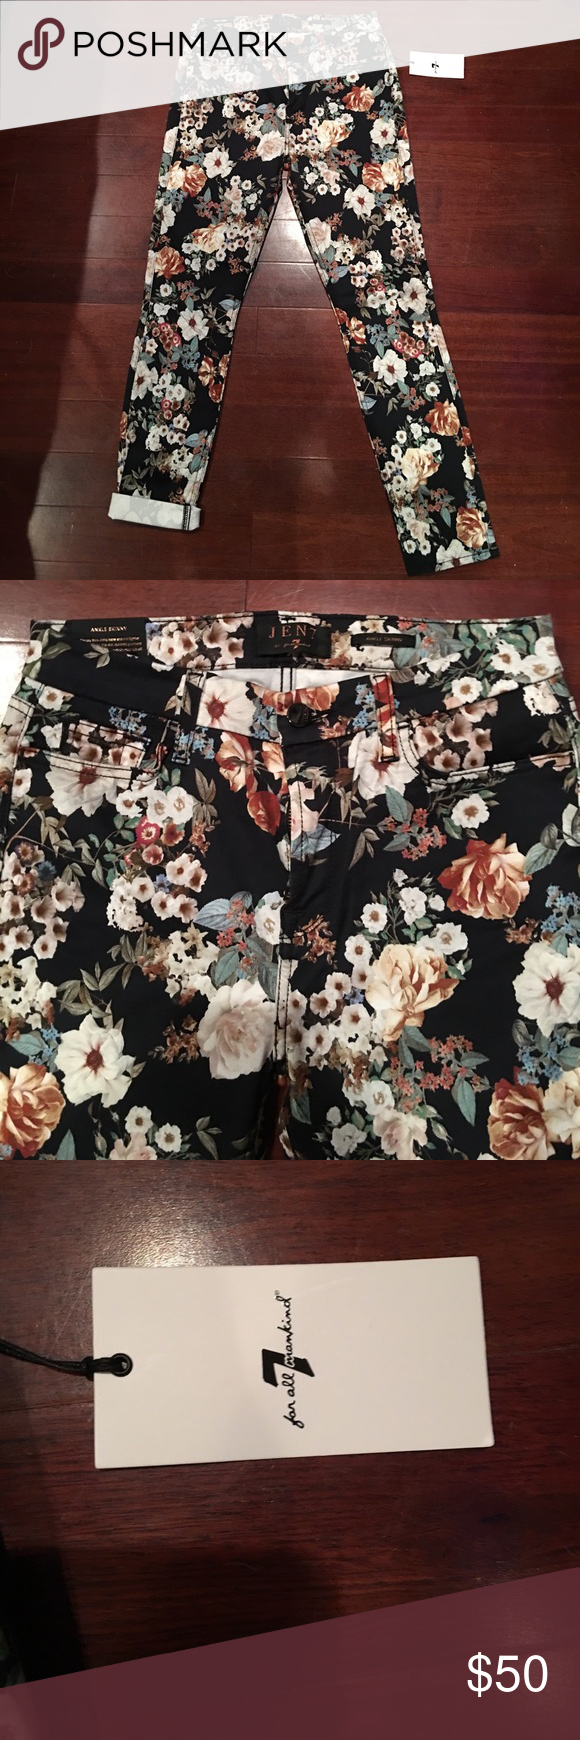 JEN7 for 7 for all mankind Floral Jean Size 4 NWT Brand new with tag, Size 4/27, floral pattern, style is ankle skinny 7 For All Mankind Pants Skinny